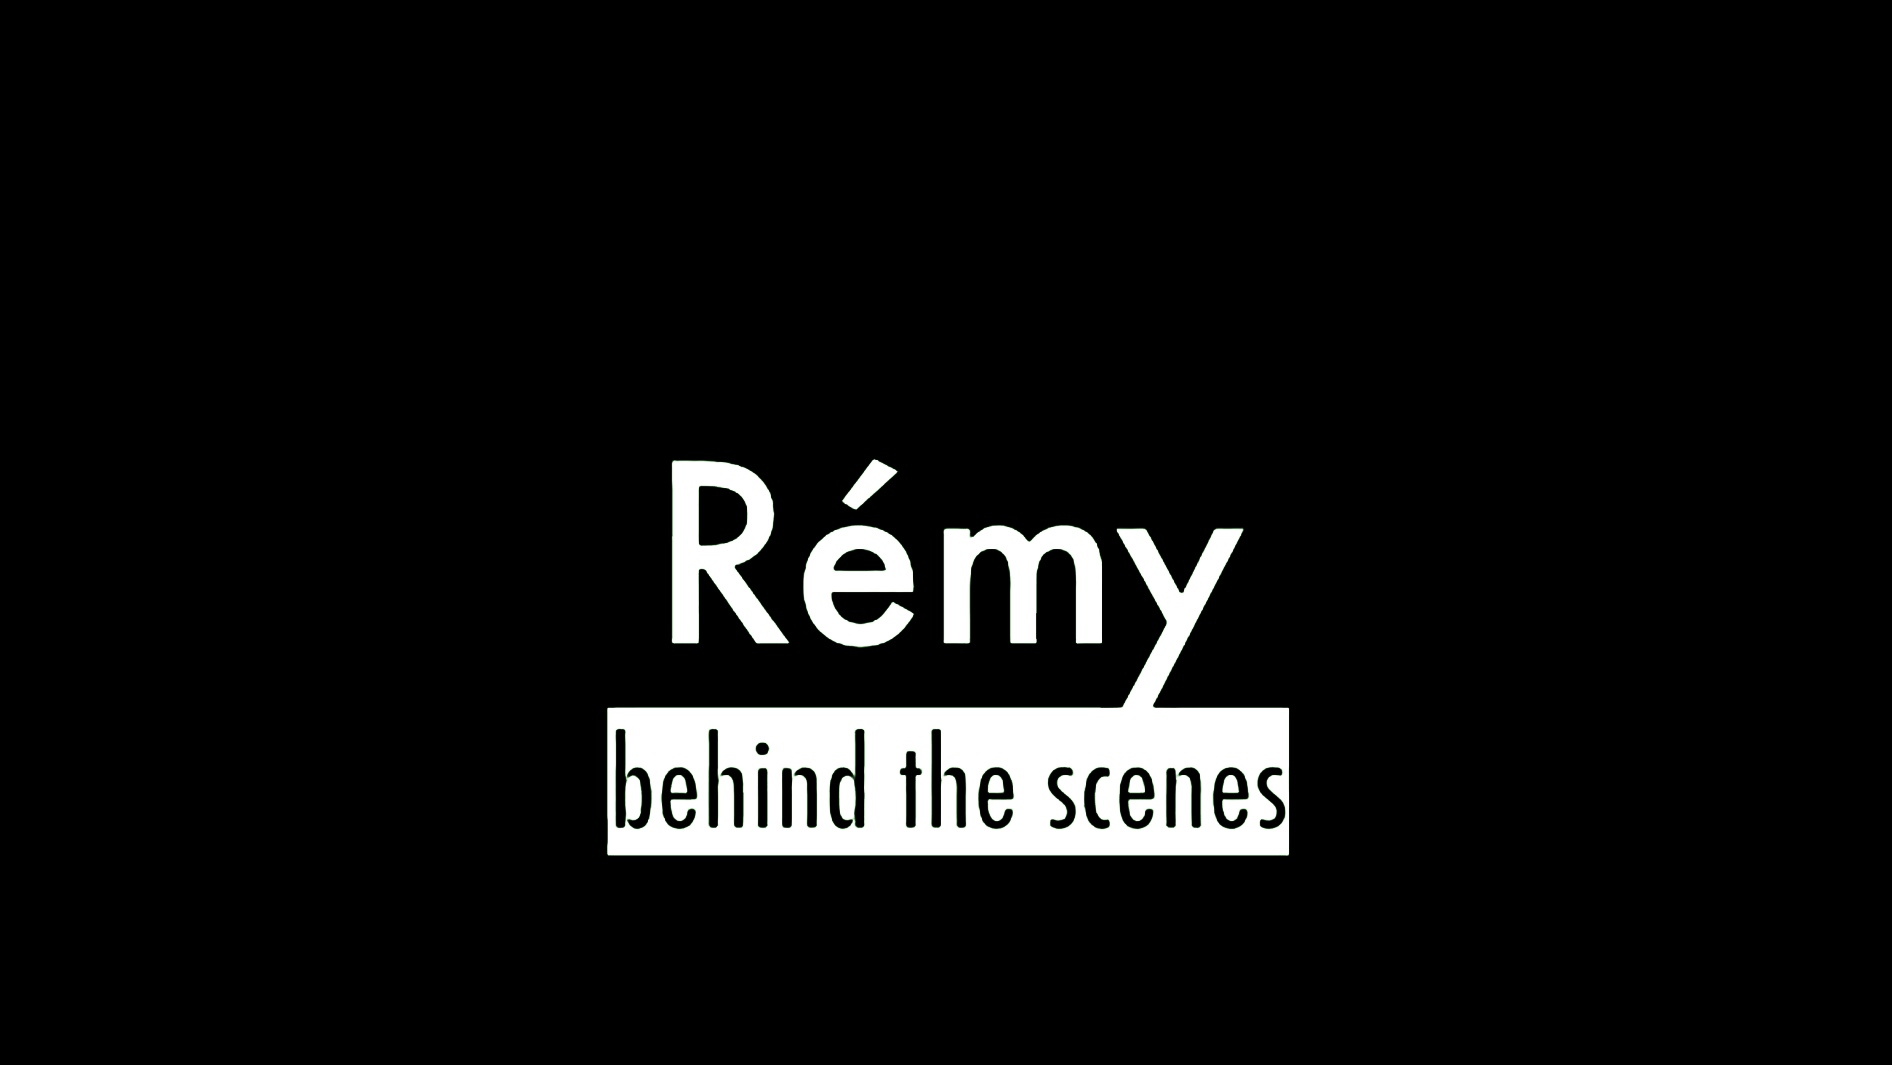 Rémy behind the scenes